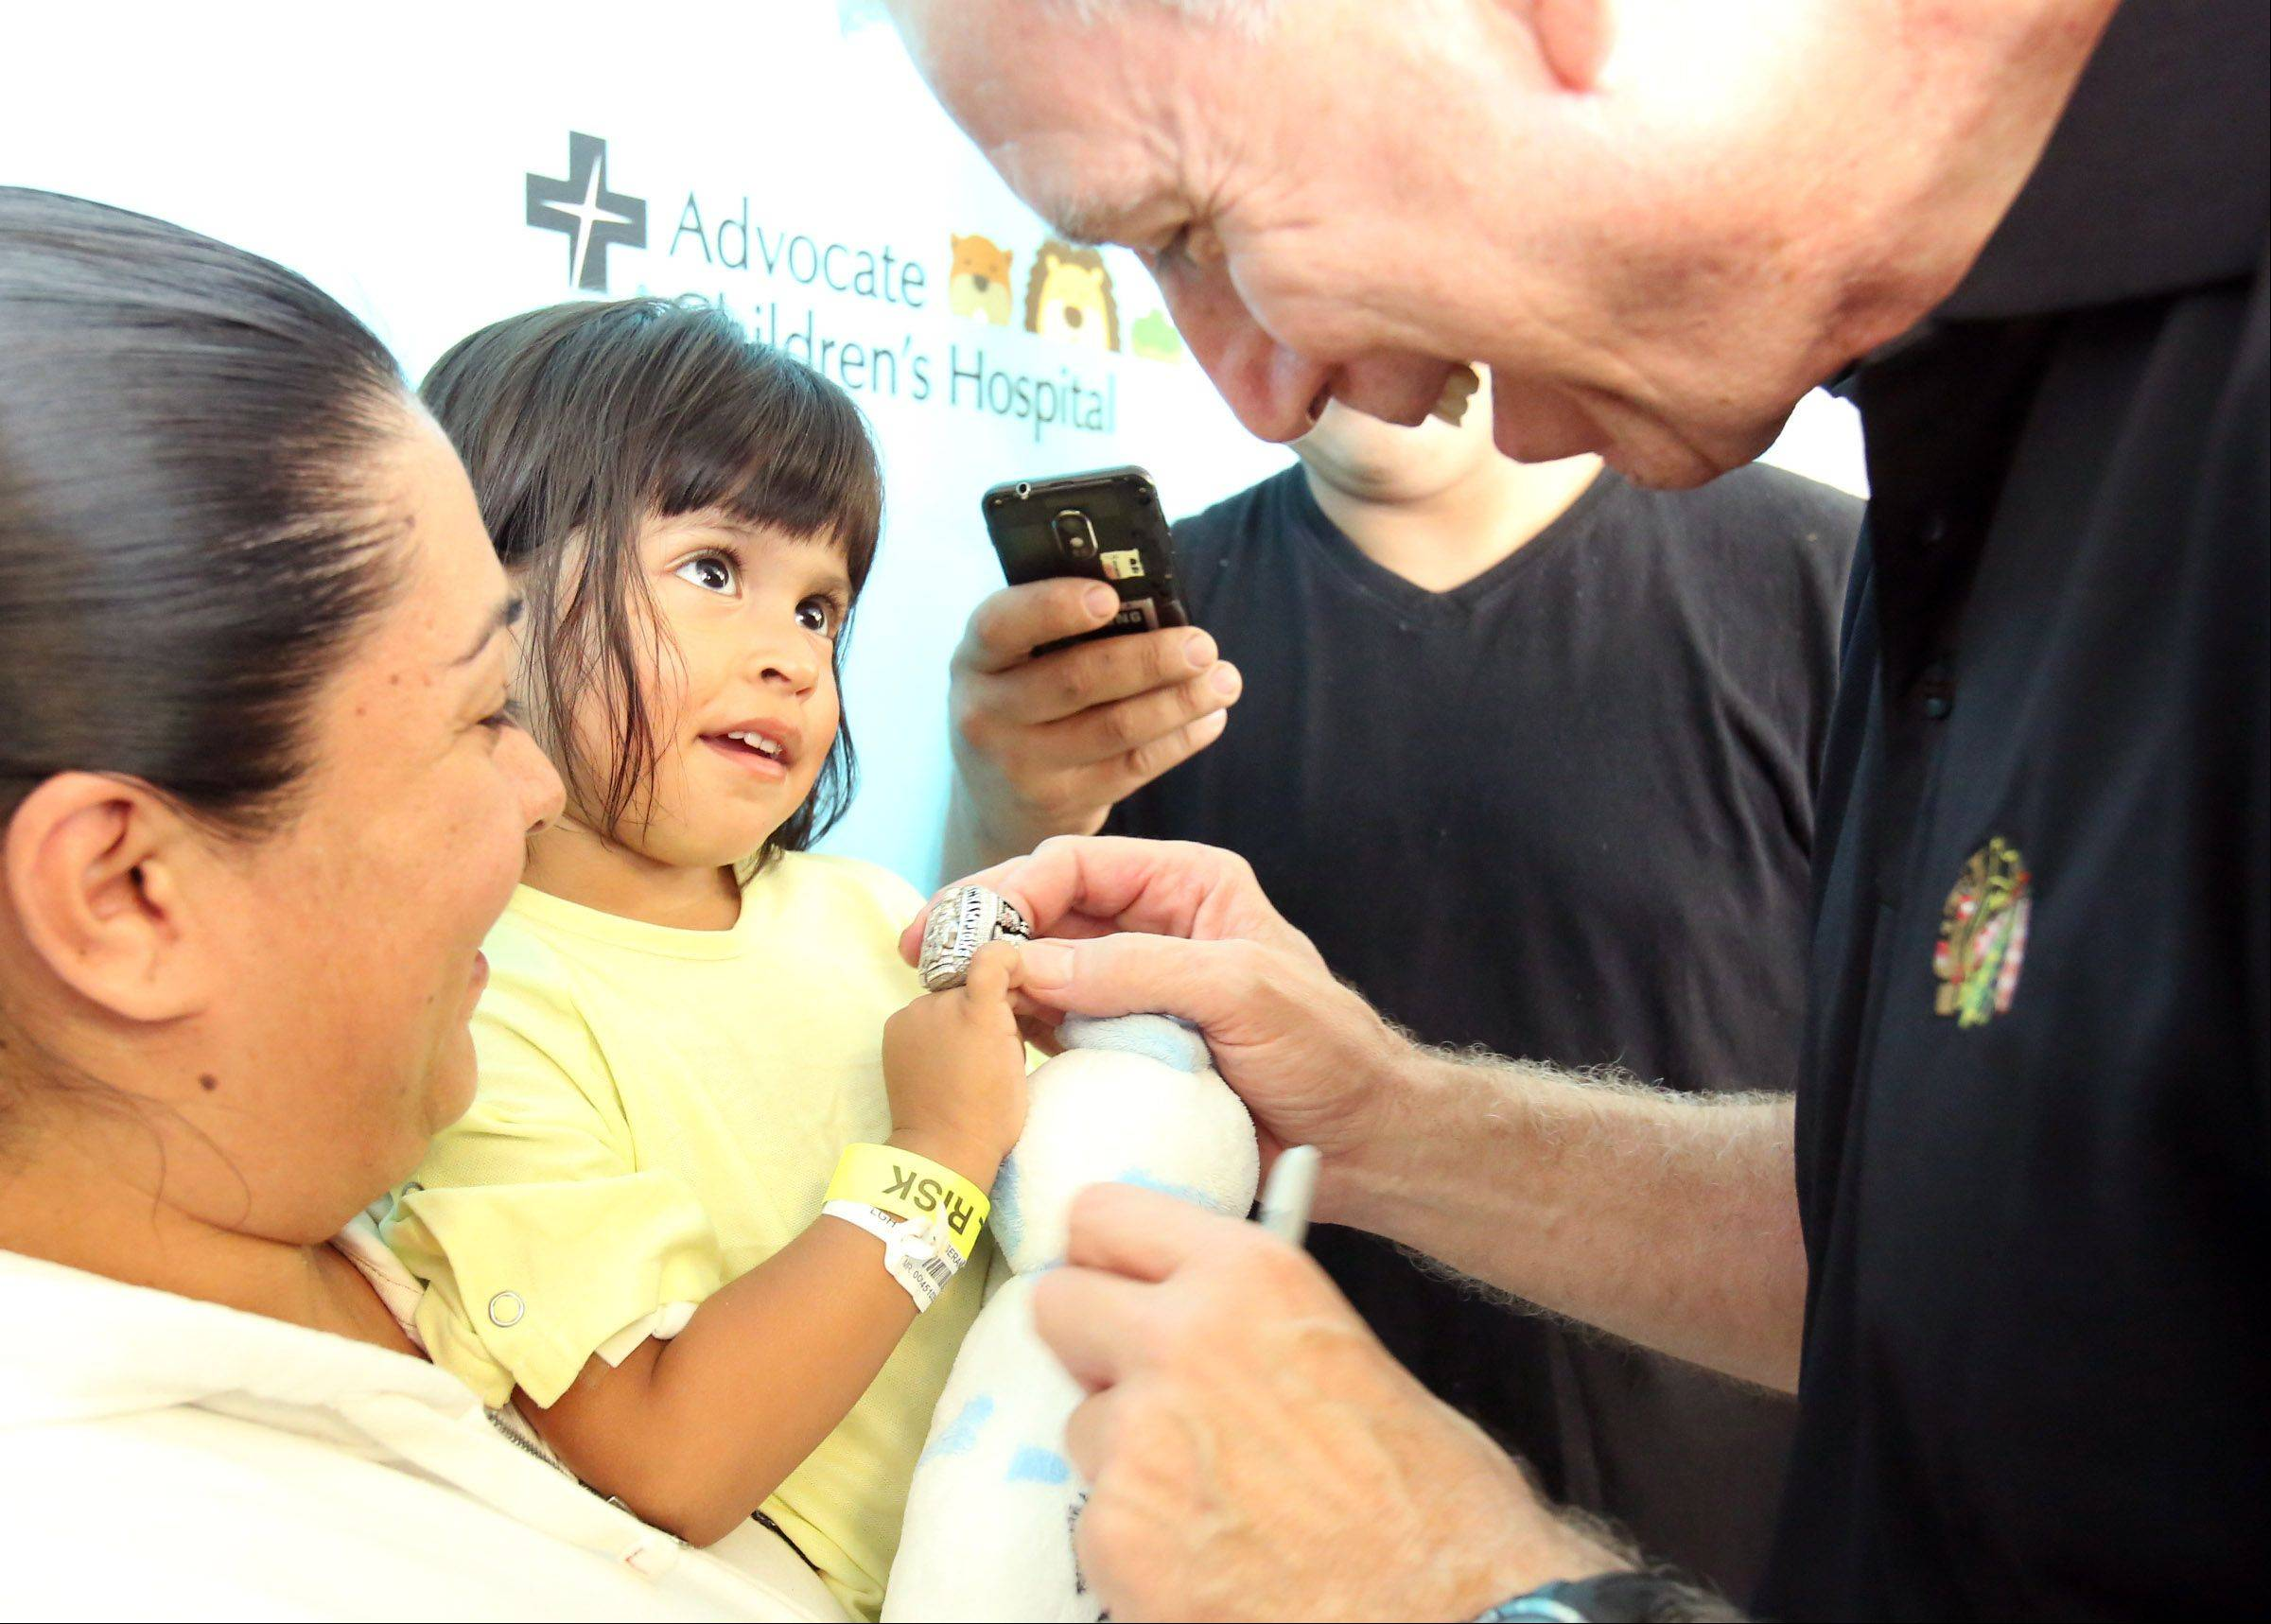 Chicago Blackhawks president and CEO John McDonough places his championship ring on 3-year-old Julia Ximena of Wonder Lake's finger. The ring brought a smile to her face as it slid around her small finger at Advocate Children's Hospital in Park Ridge on Saturday.